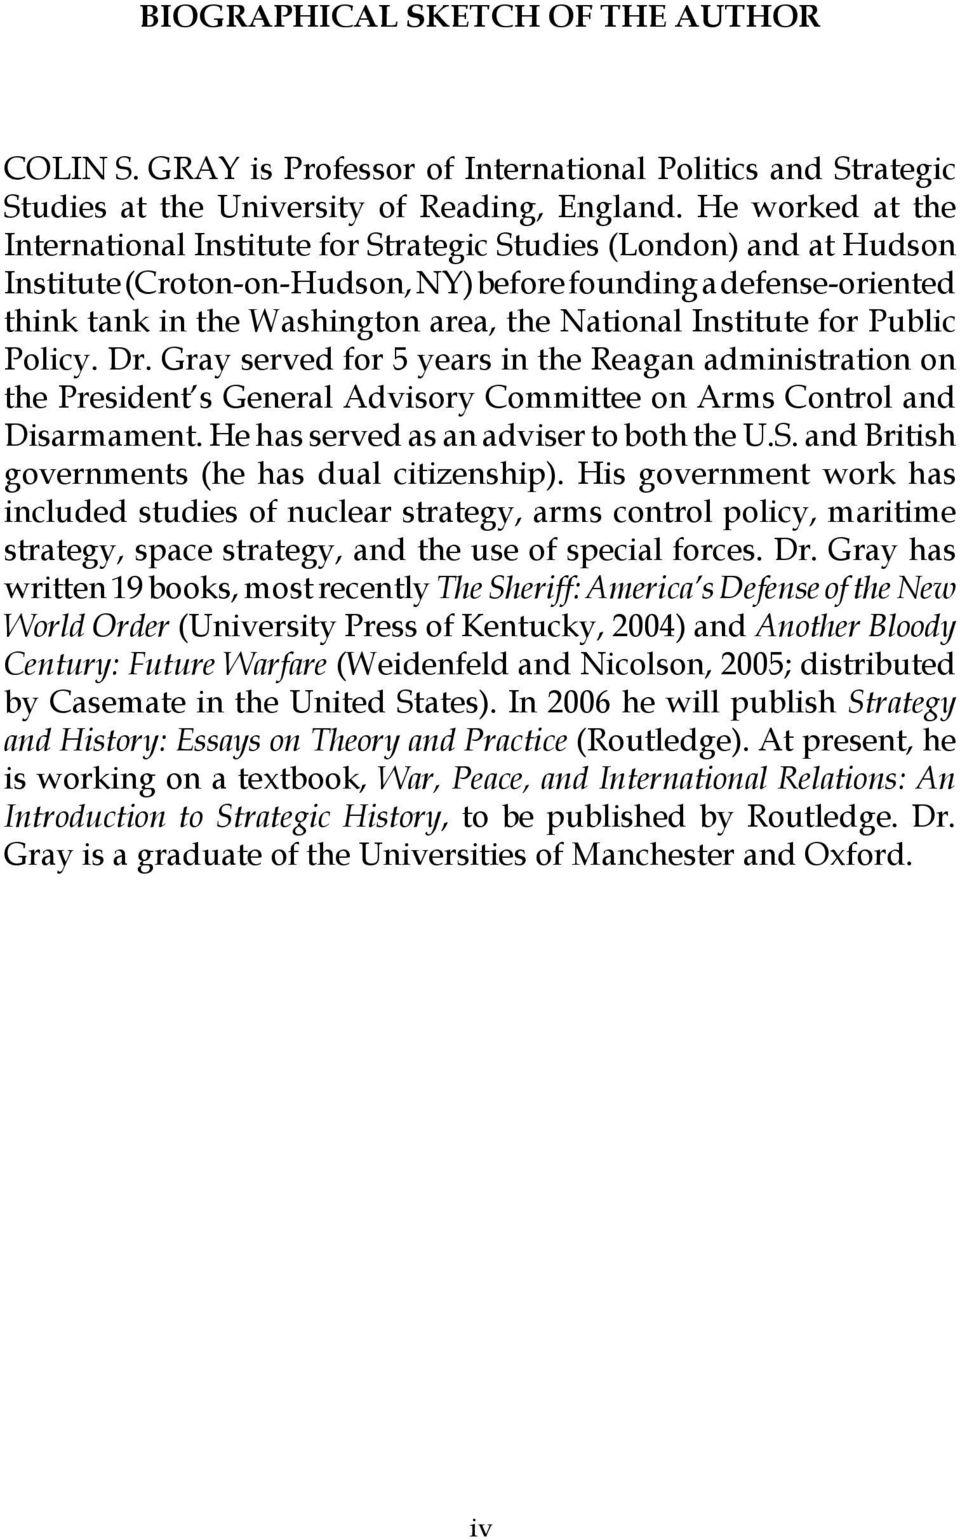 National Institute for Public Policy. Dr. Gray served for 5 years in the Reagan administration on the President s General Advisory Committee on Arms Control and Disarmament.